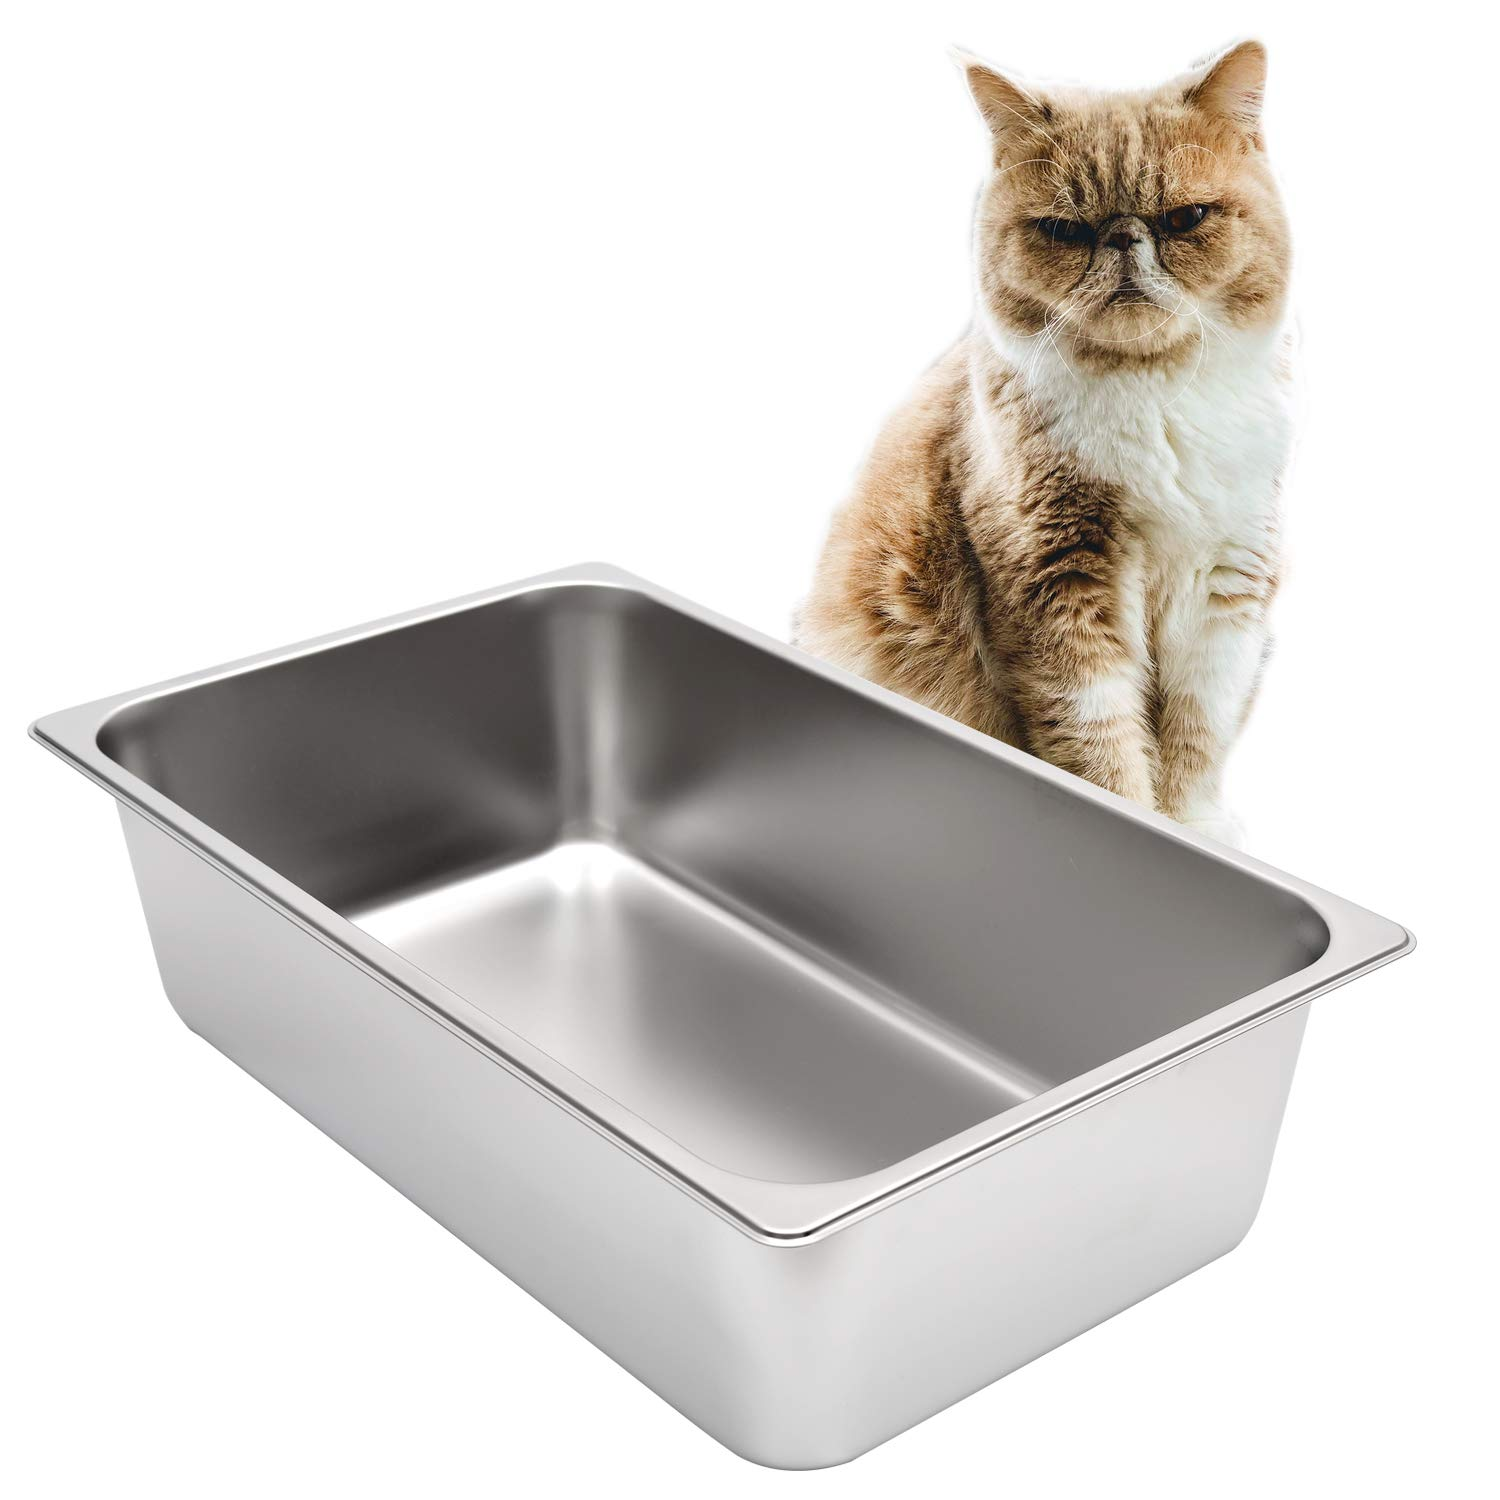 Kichwit Stainless Steel Litter Box for Cat and Rabbit, Non Stick Smooth Surface by Kichwit